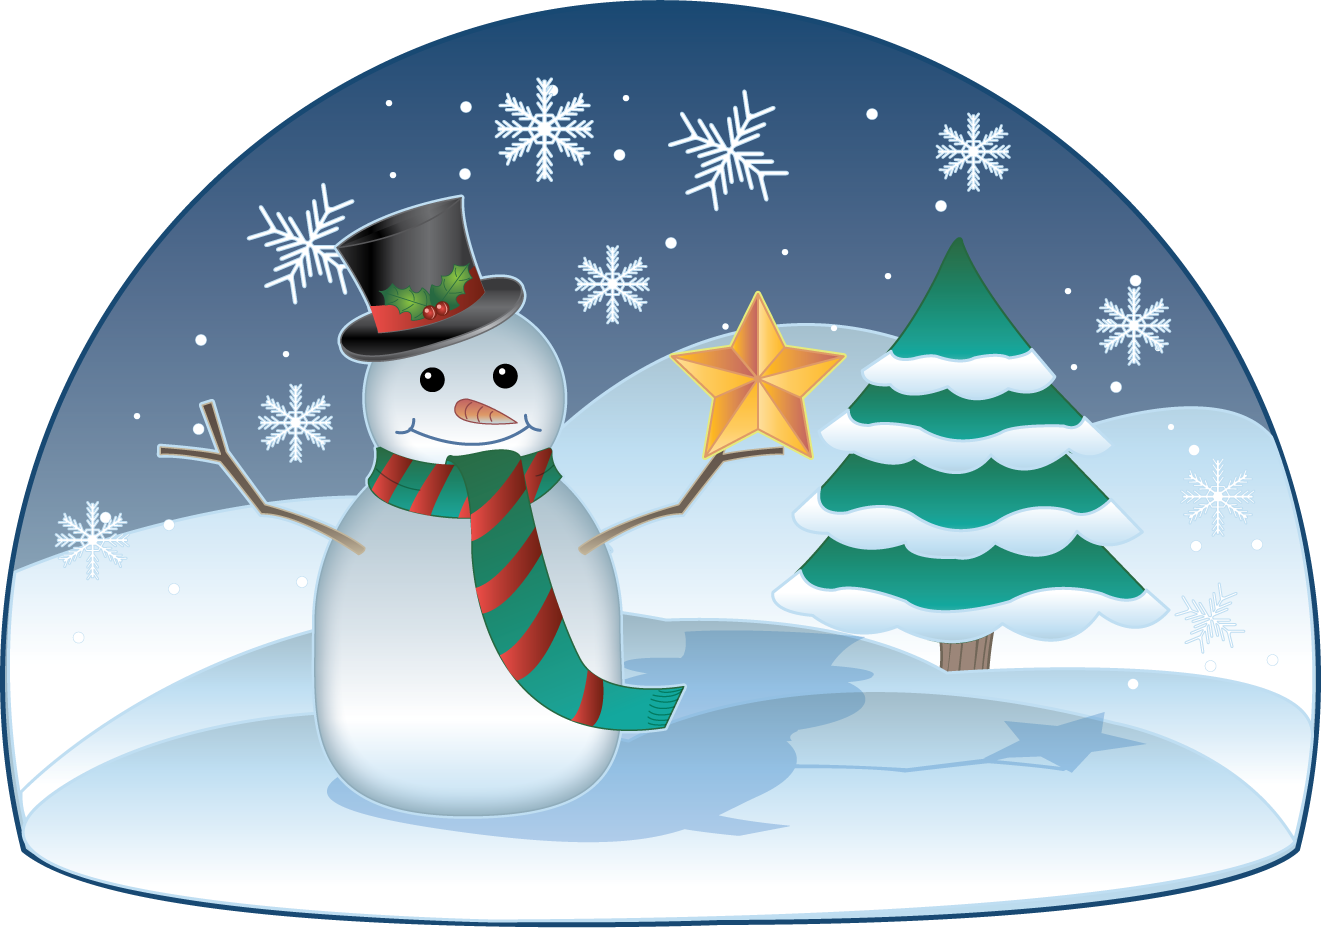 Winter wonderland free clipart